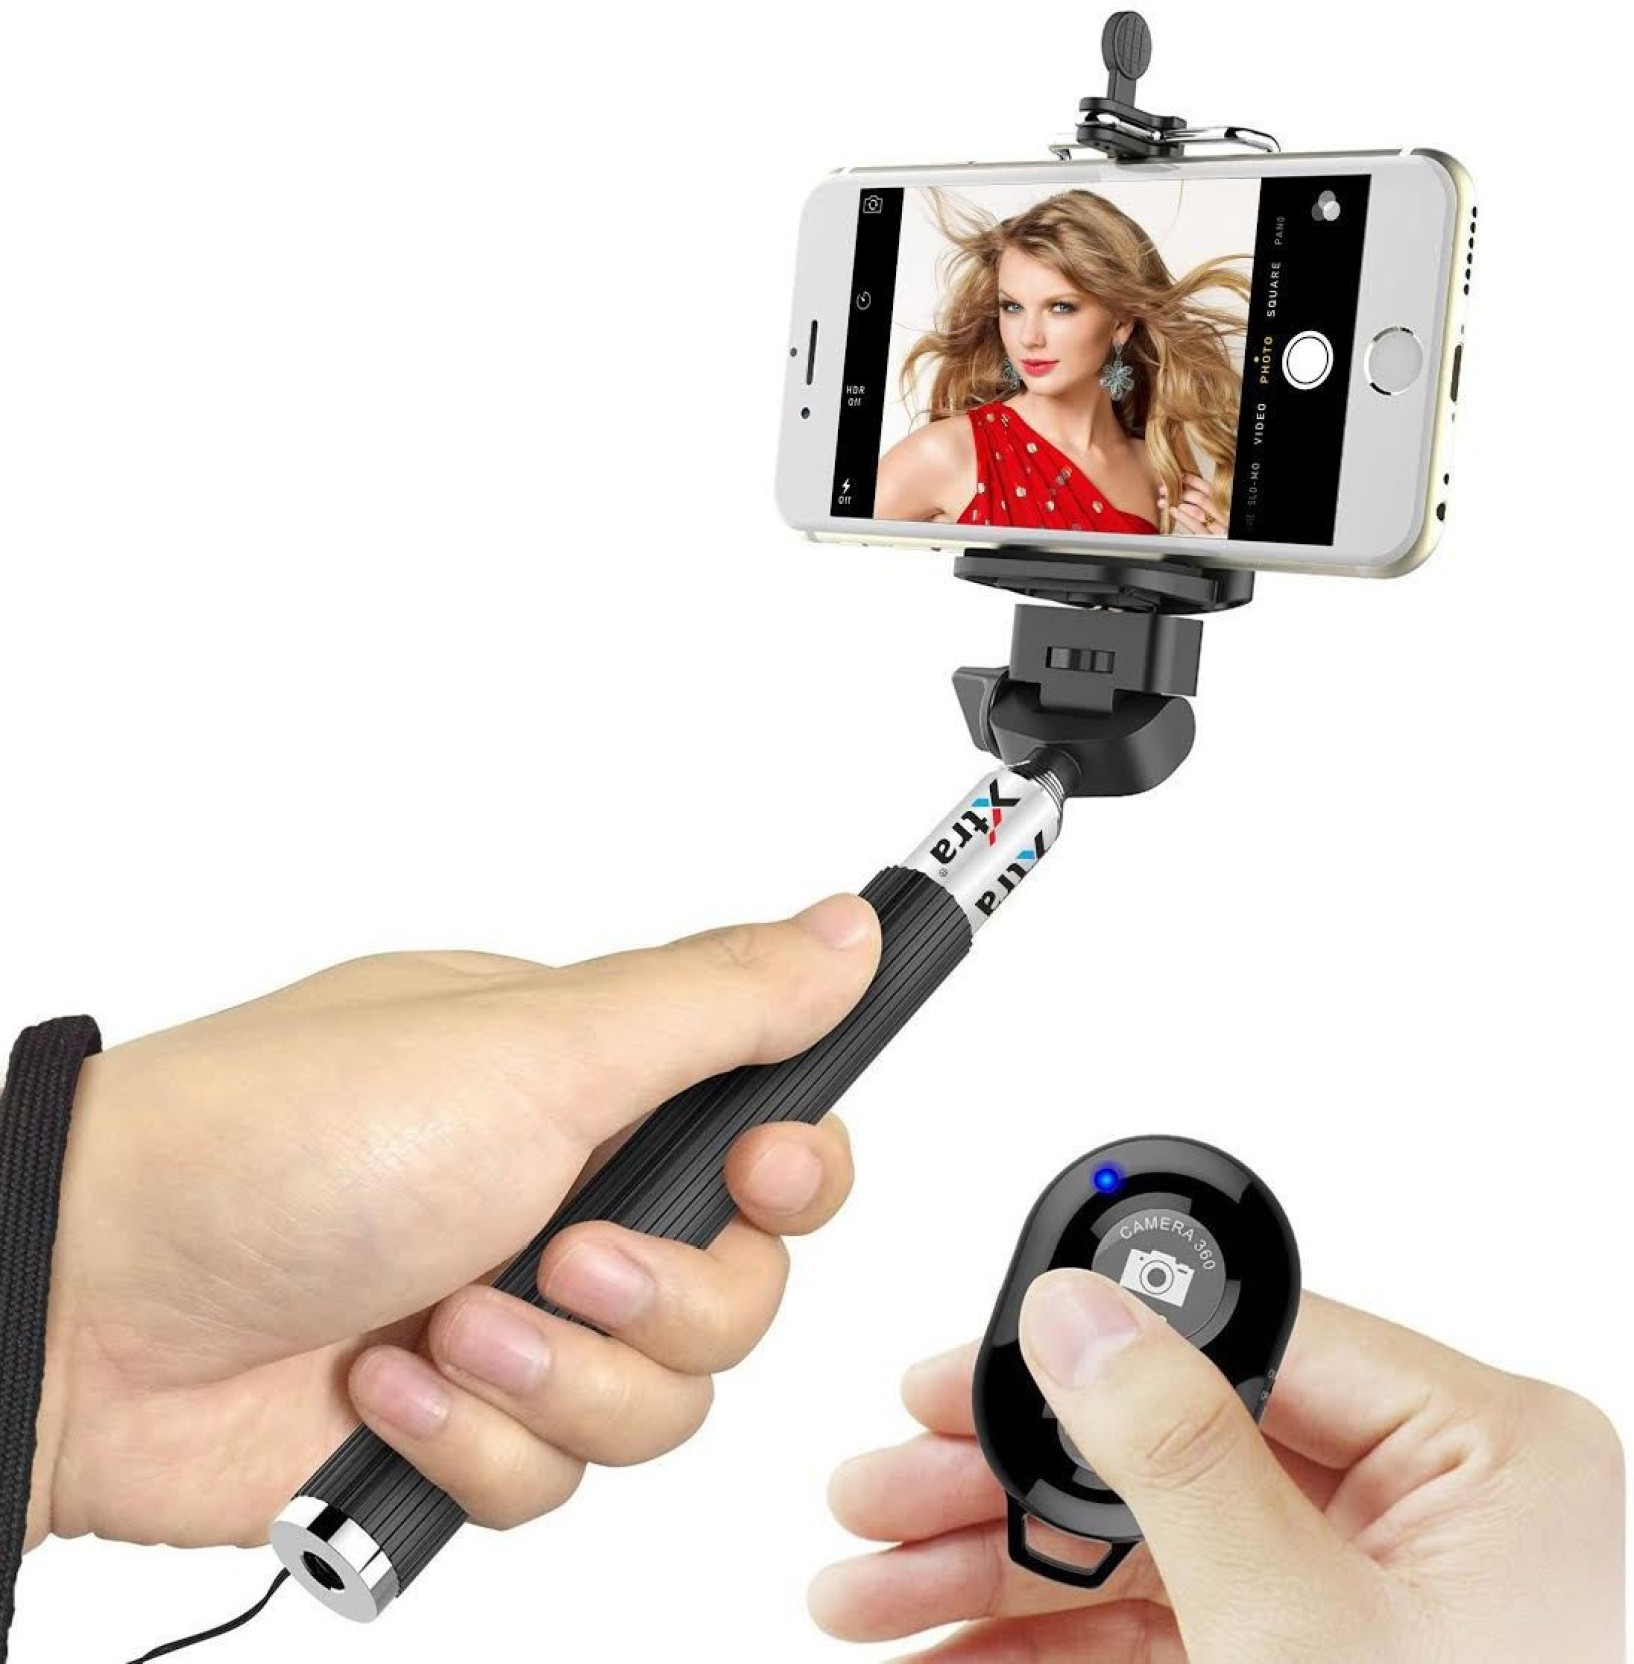 xtra bluetooth selfie stick price in india buy xtra bluetooth selfie stick online at. Black Bedroom Furniture Sets. Home Design Ideas